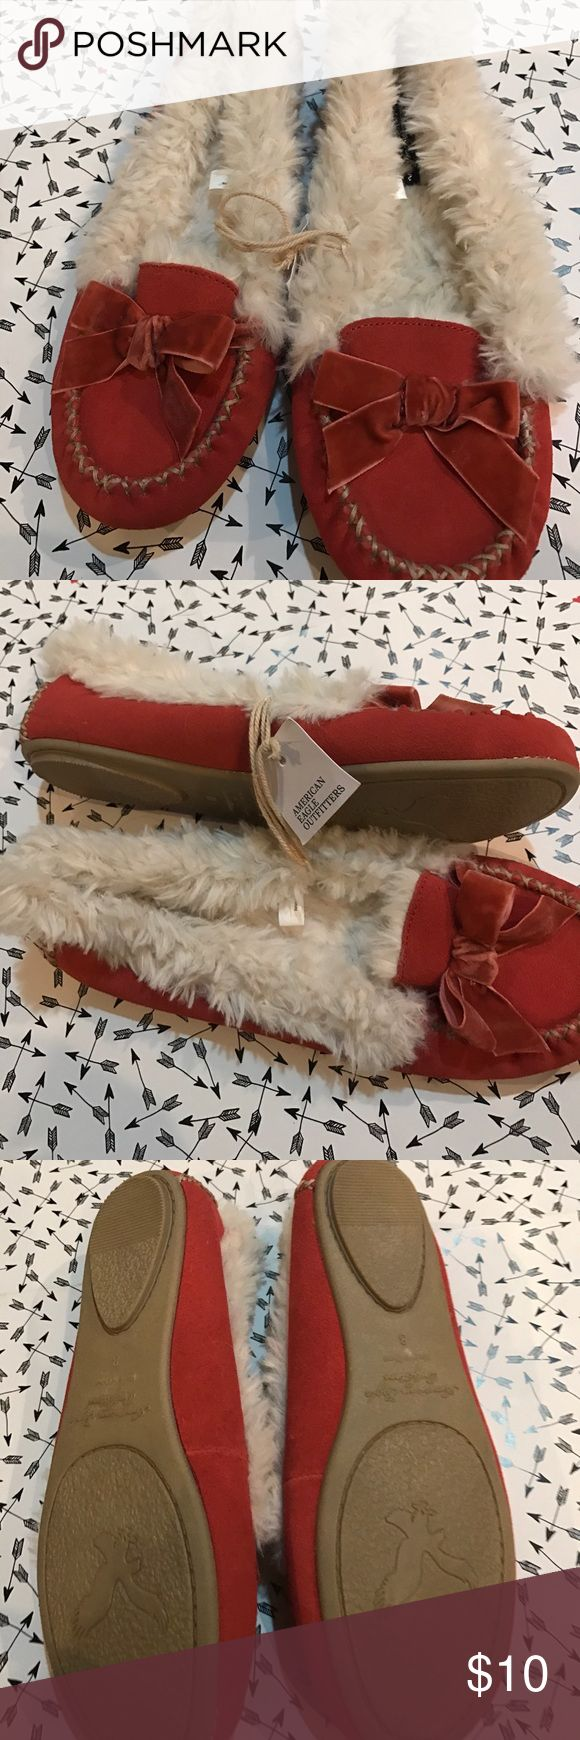 American Eagle Outfitters Orange slippers NWT s8 Orange slippers lined with cream colored fake fur. Super comfortable and can be worn as slippers or even out with rolled jeans or sweatpants. Great for college students. These are brand new never been worn. Size 8 American Eagle Outfitters Shoes Slippers